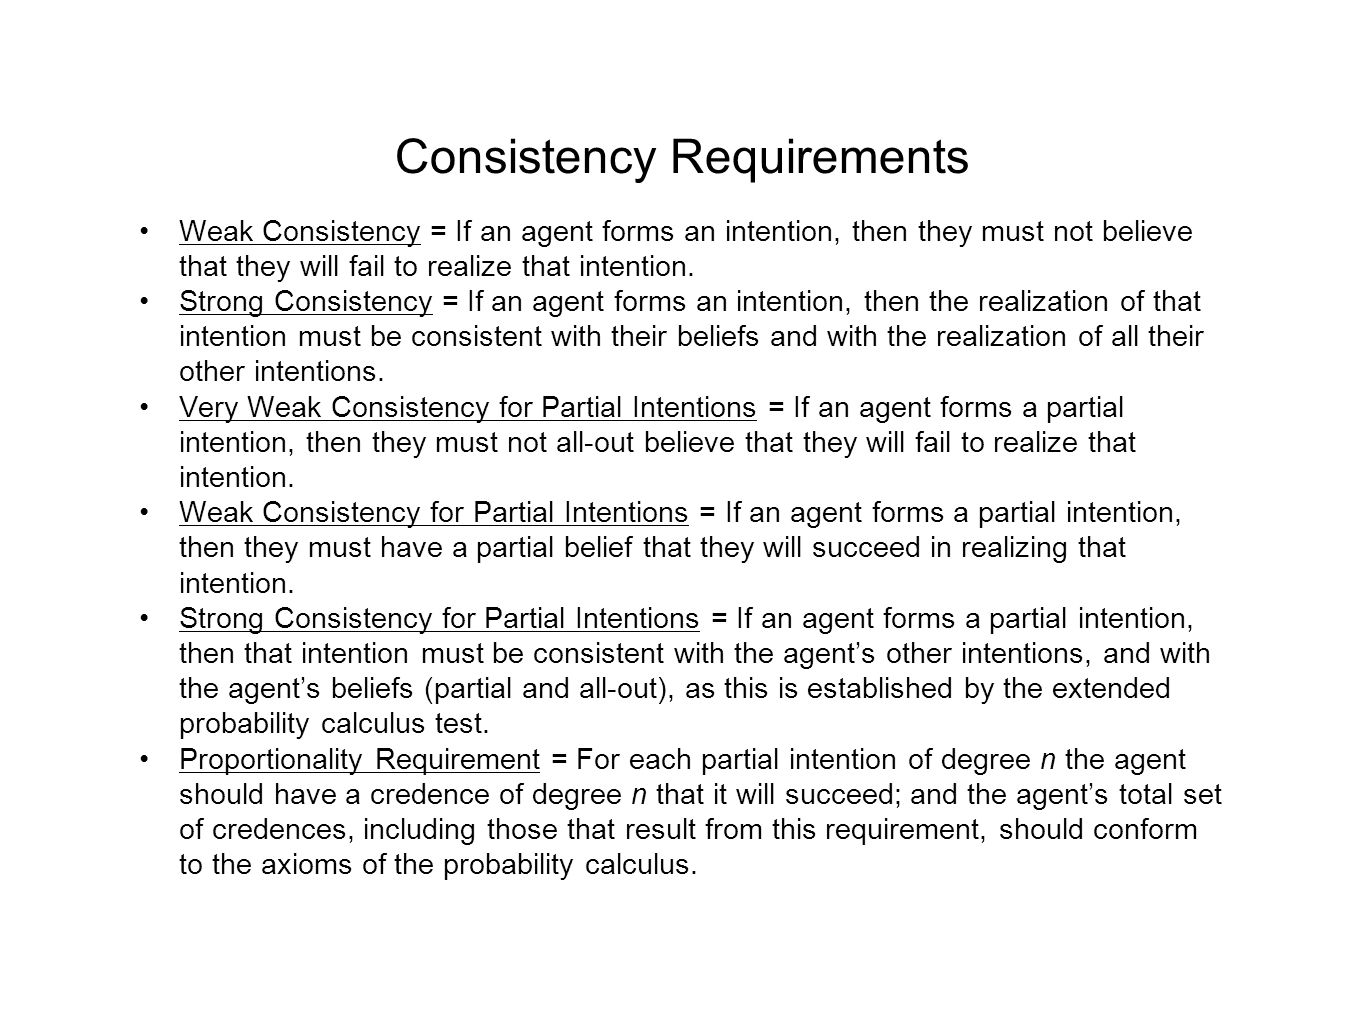 Consistency Requirements Weak Consistency = If an agent forms an intention, then they must not believe that they will fail to realize that intention.